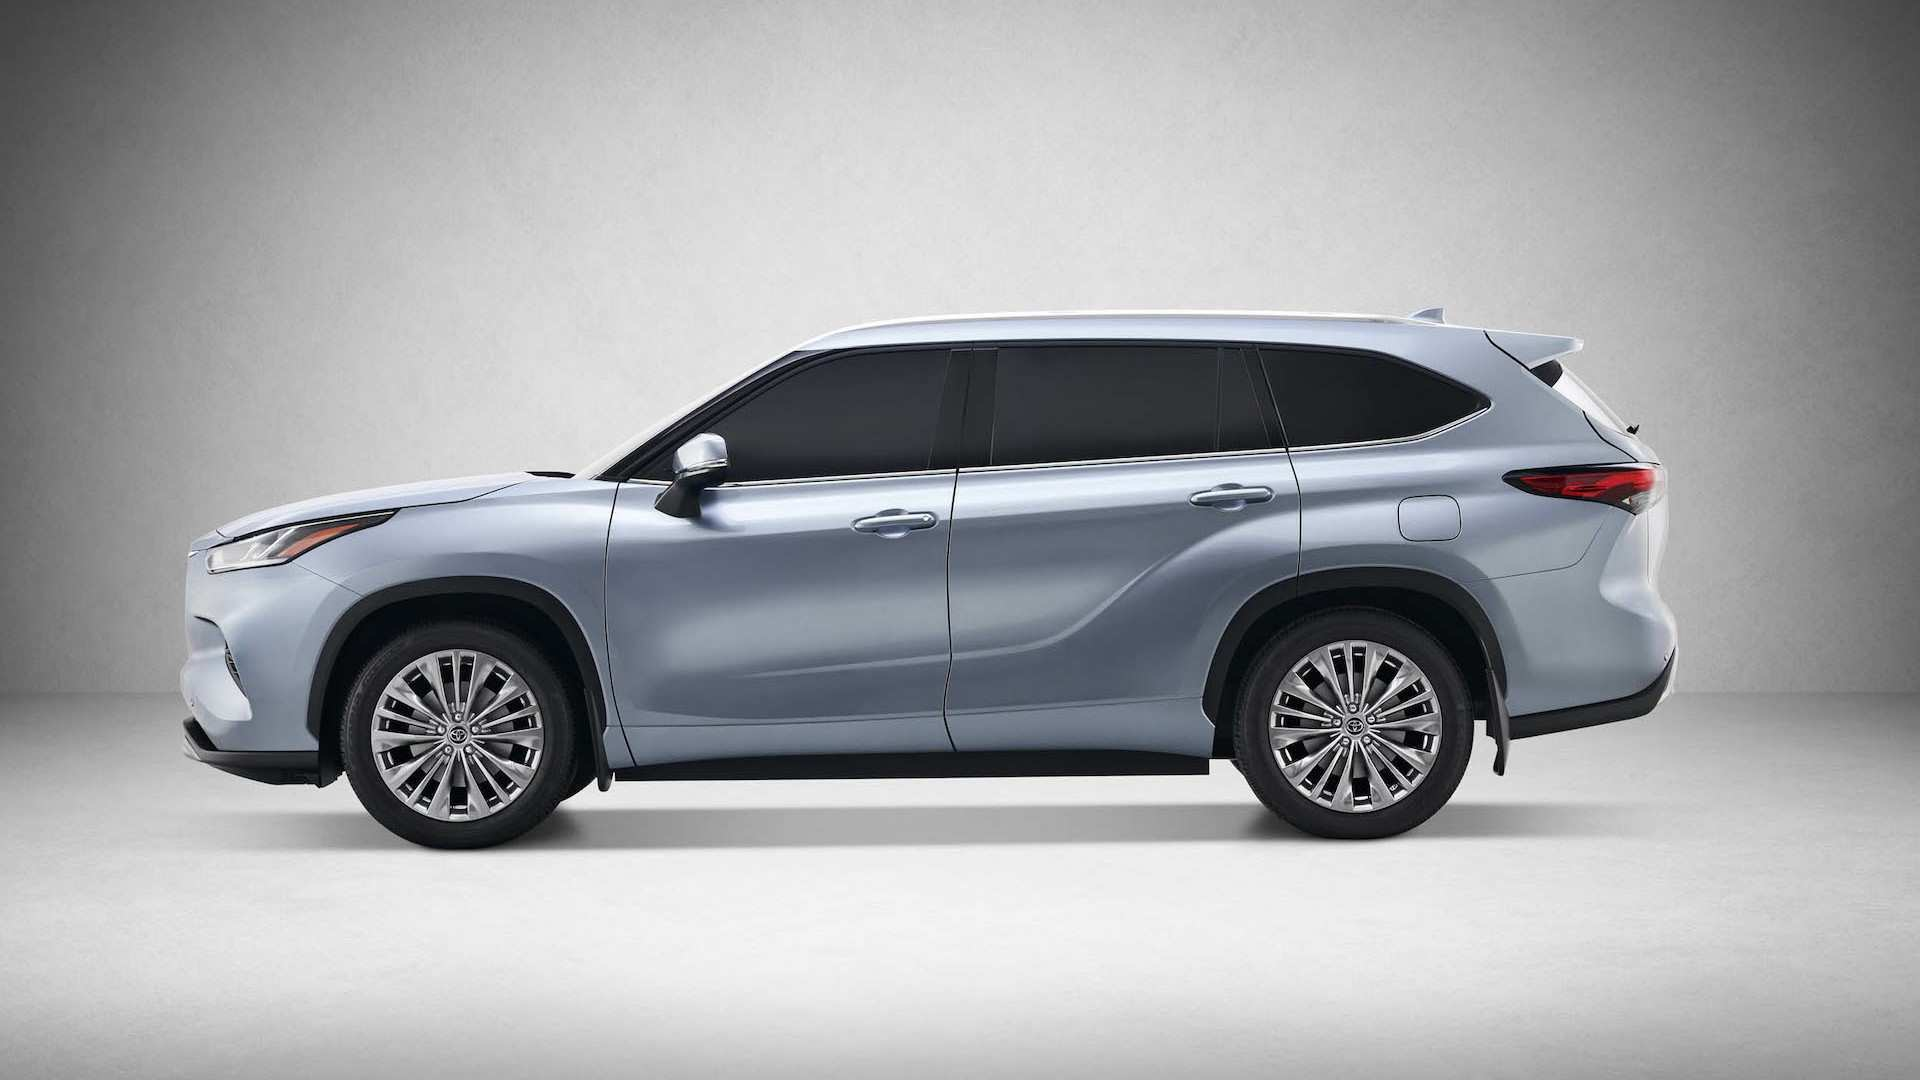 51 The Best 2020 Toyota Highlander Hybrid New Concept